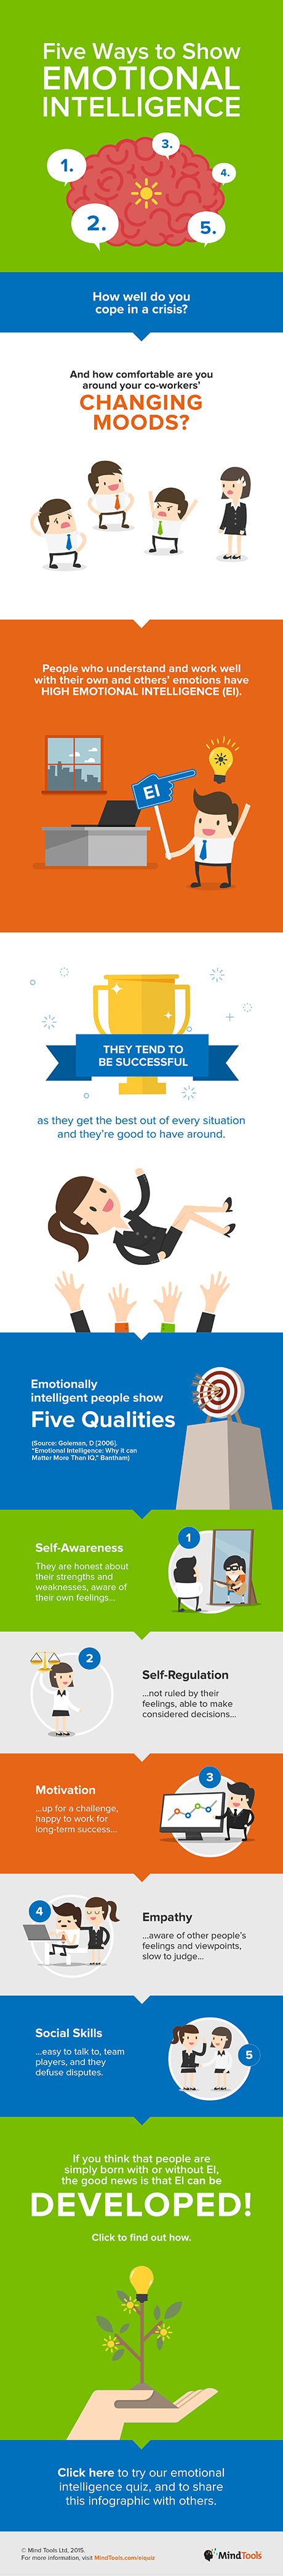 infographic-emotional-intelligence_460x4191